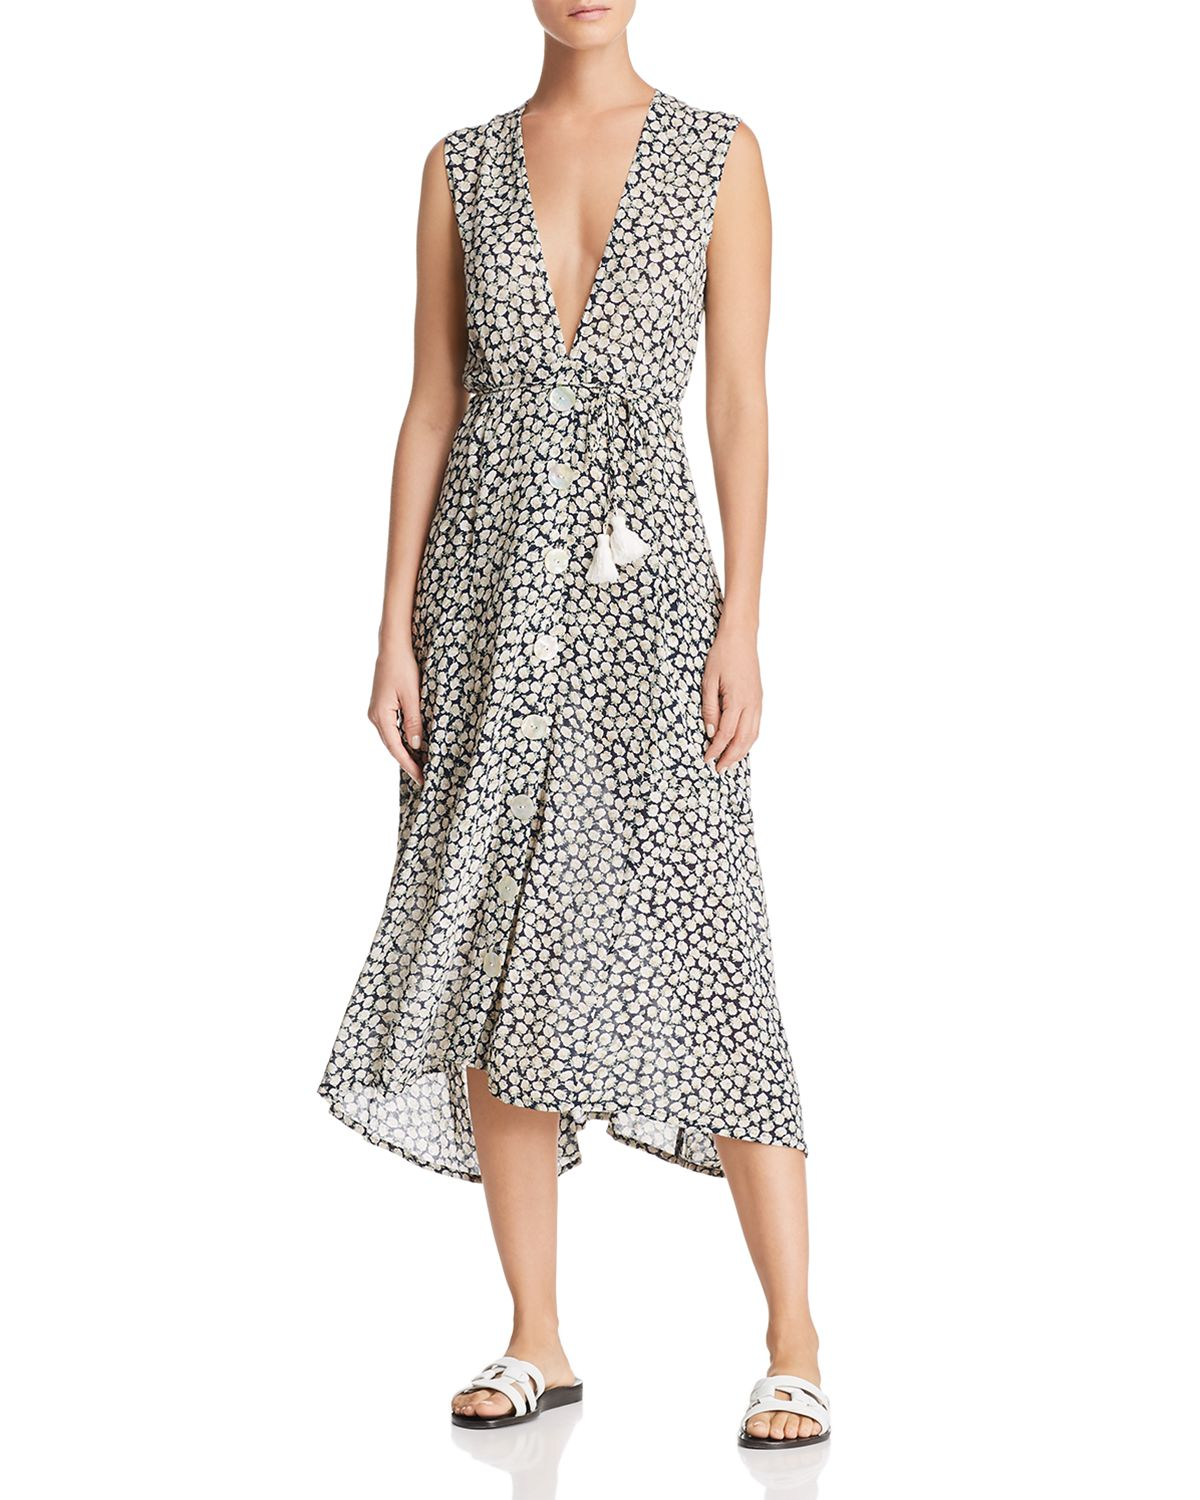 Blohm Floral Midi Dress by Faithfull The Brand